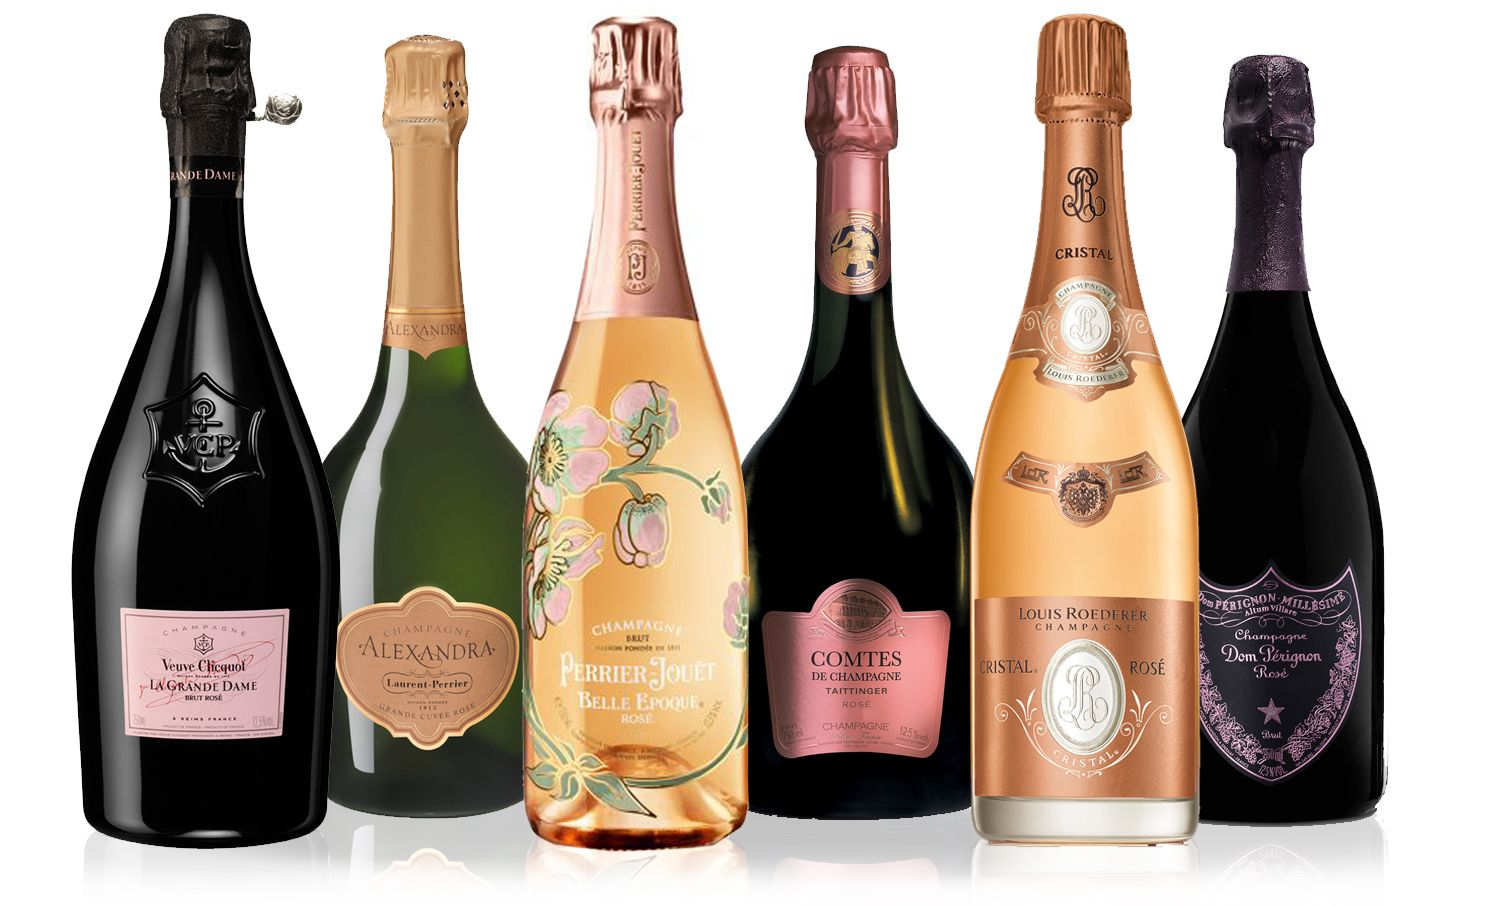 Best 15 Champagne Brands & Houses in 2021